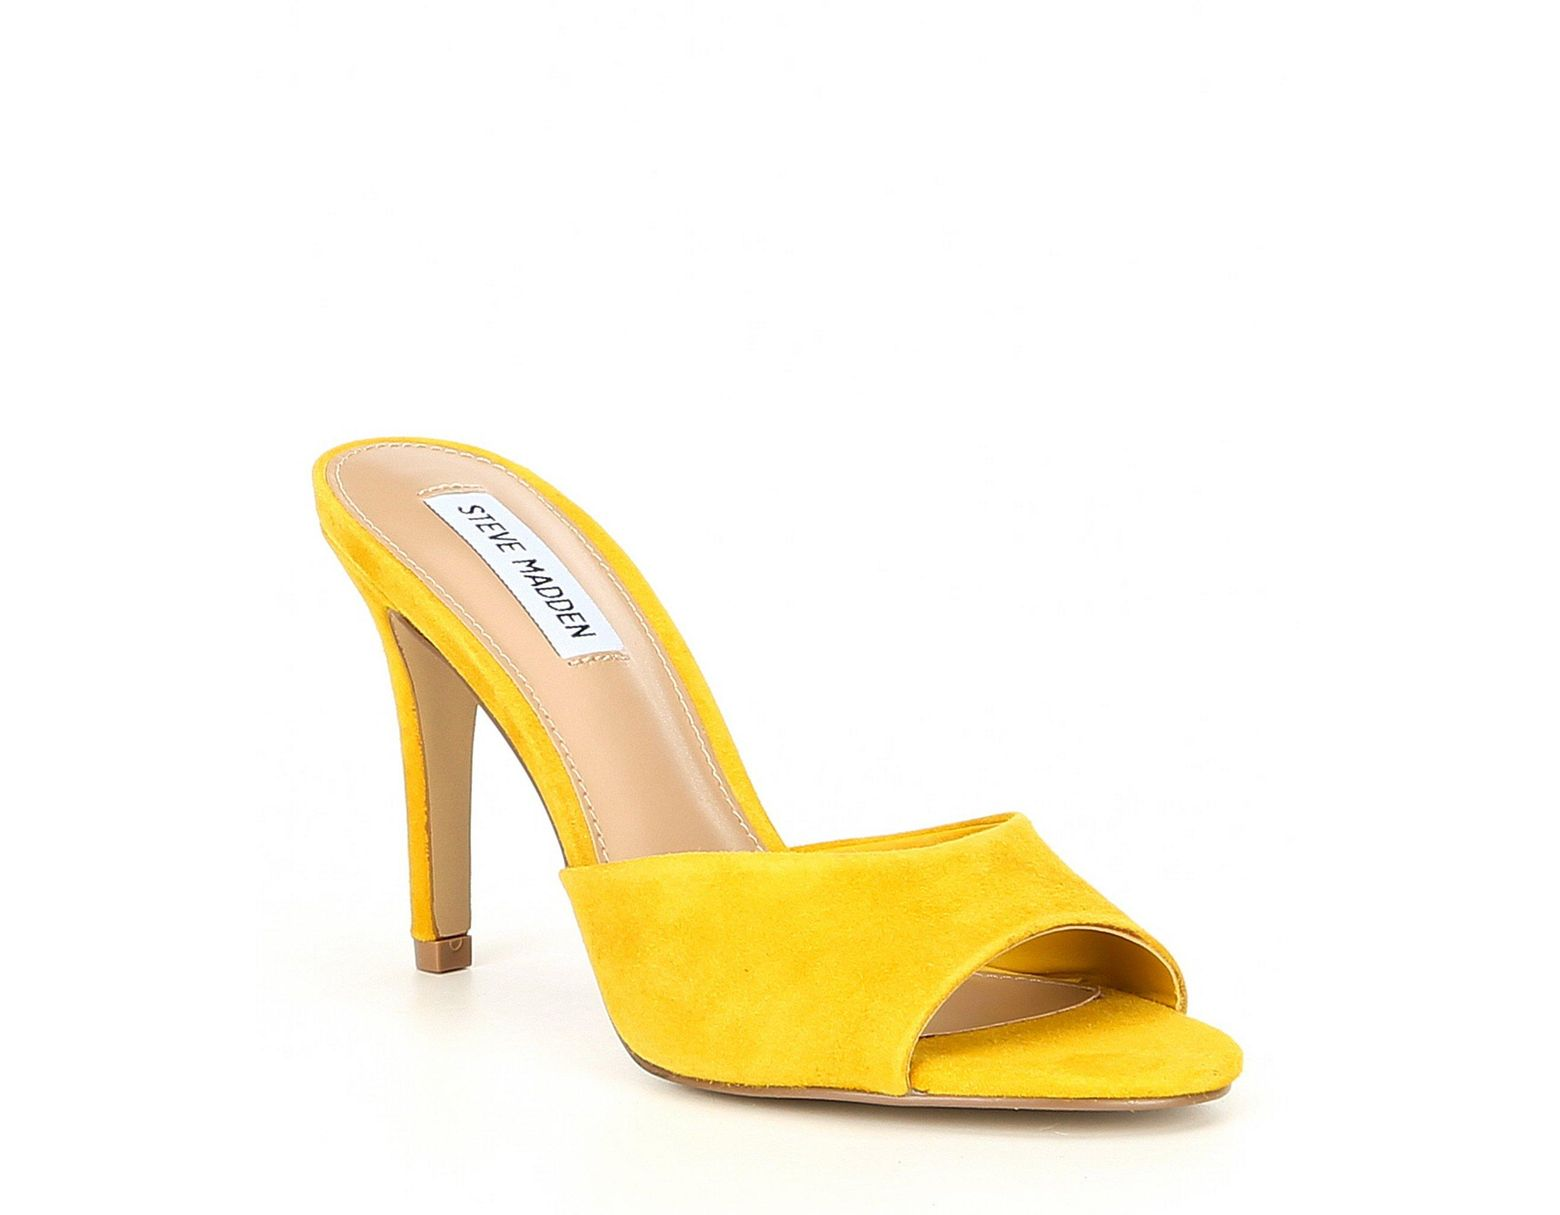 3c63e10acd0b Steve Madden Erin Suede Stiletto Sandals in Yellow - Save 41% - Lyst